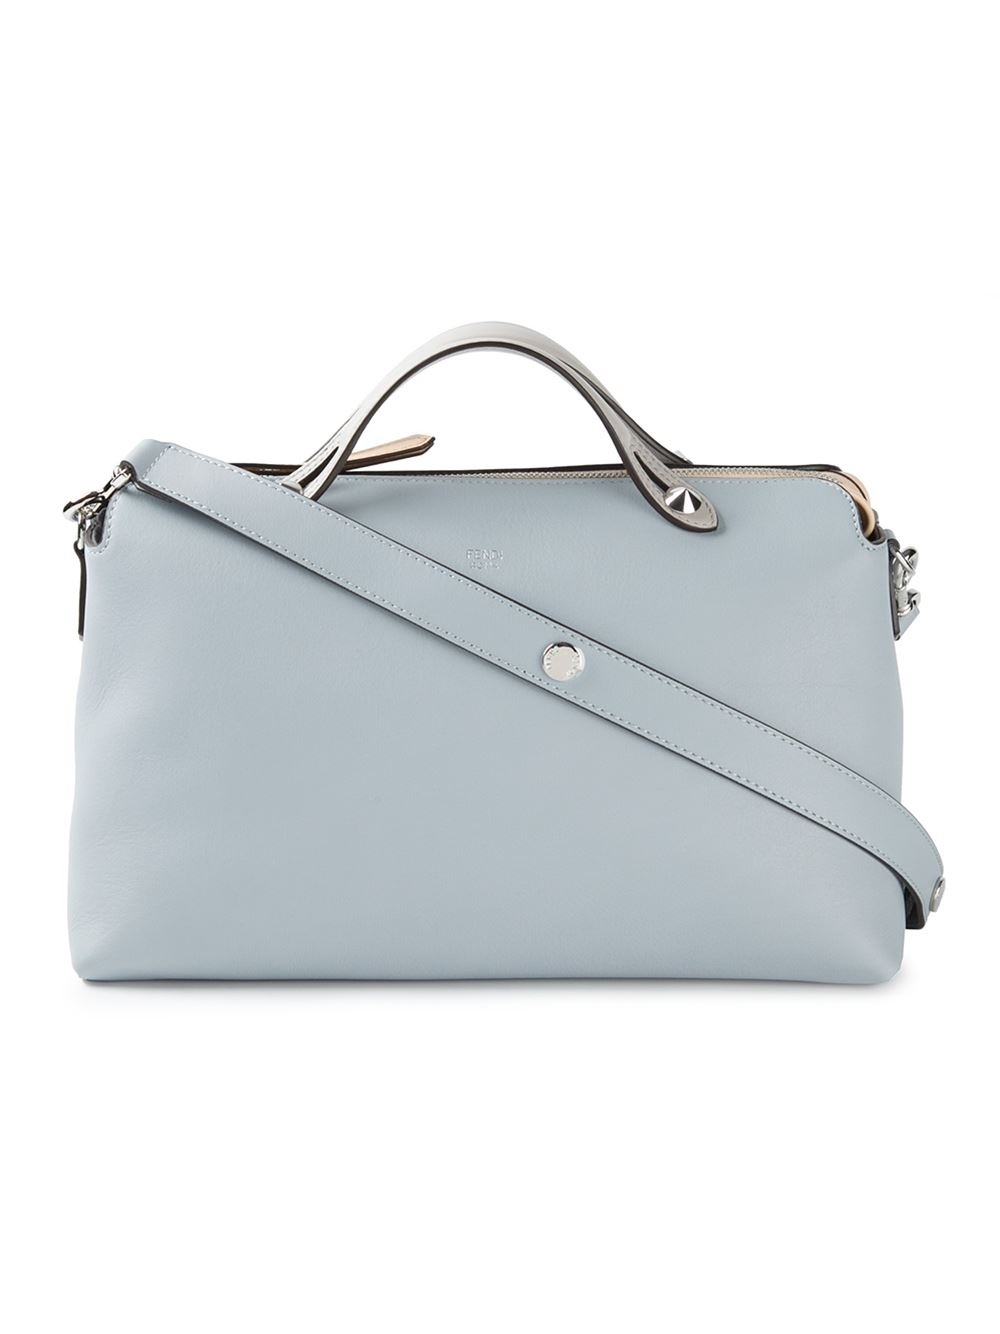 1874c526b75c Lyst - Fendi  By The Way  Tote in Blue